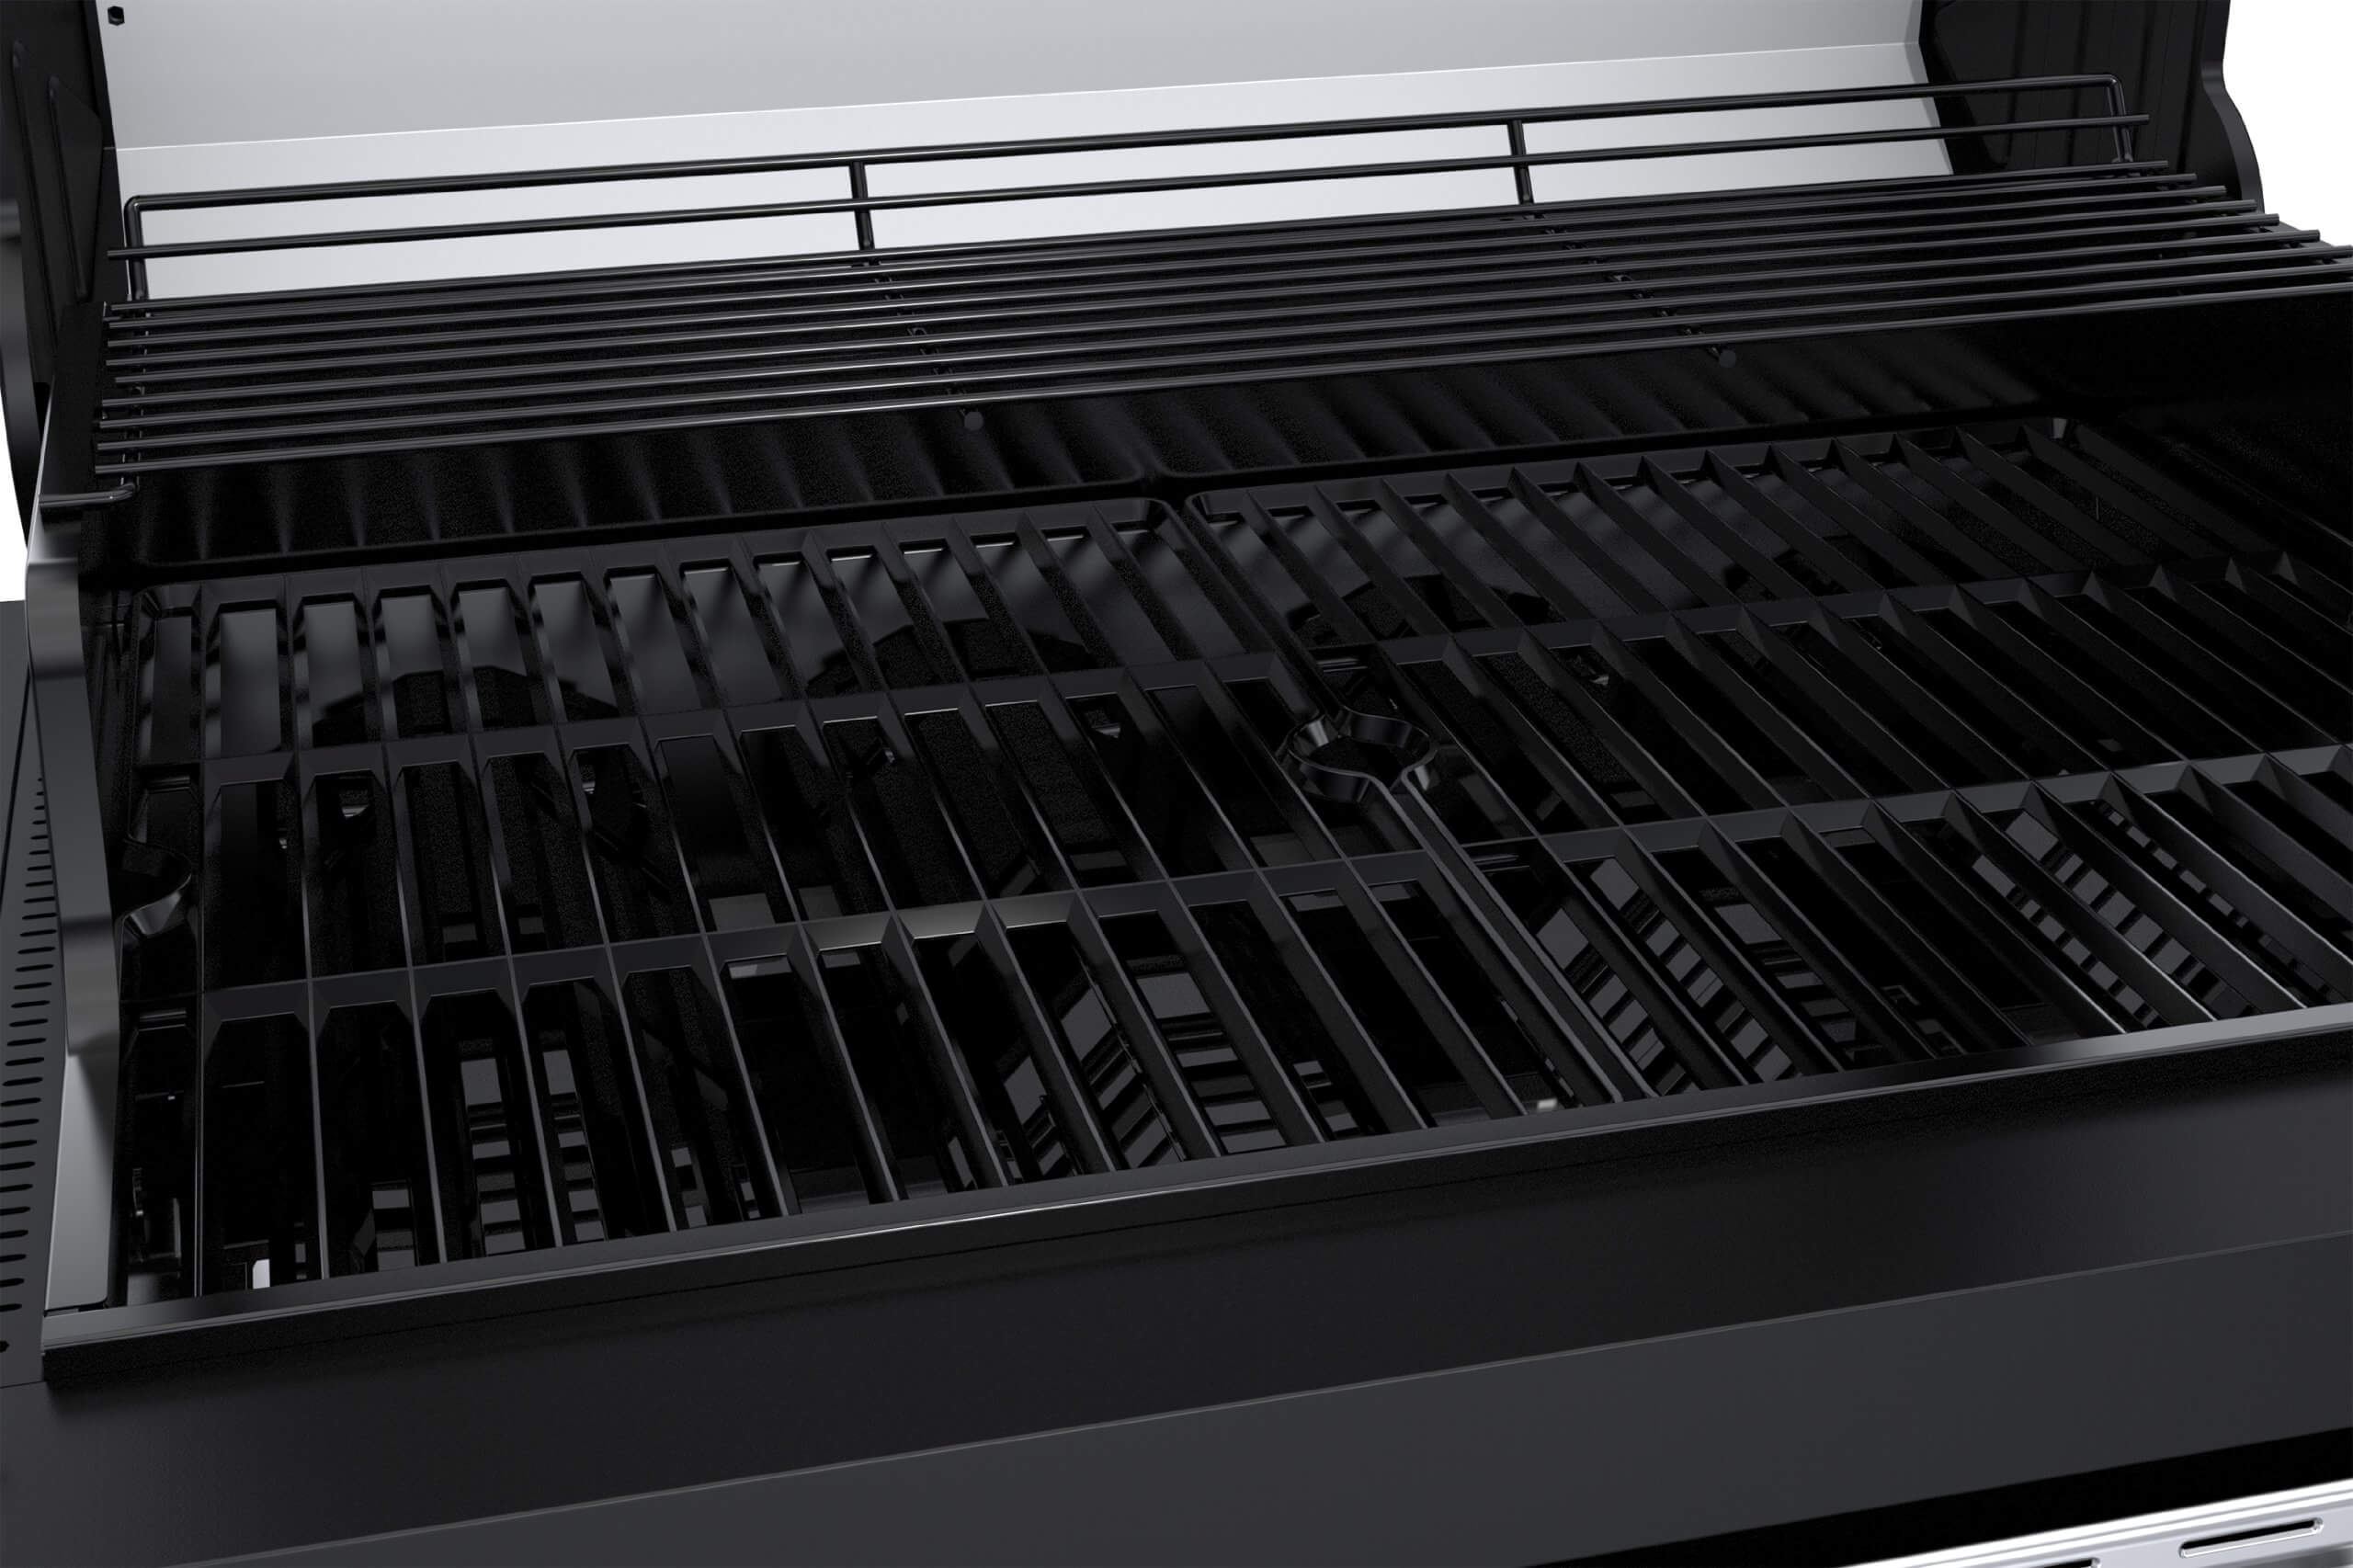 best grills under 500, dyna glo grill reviews, buy gas bbq